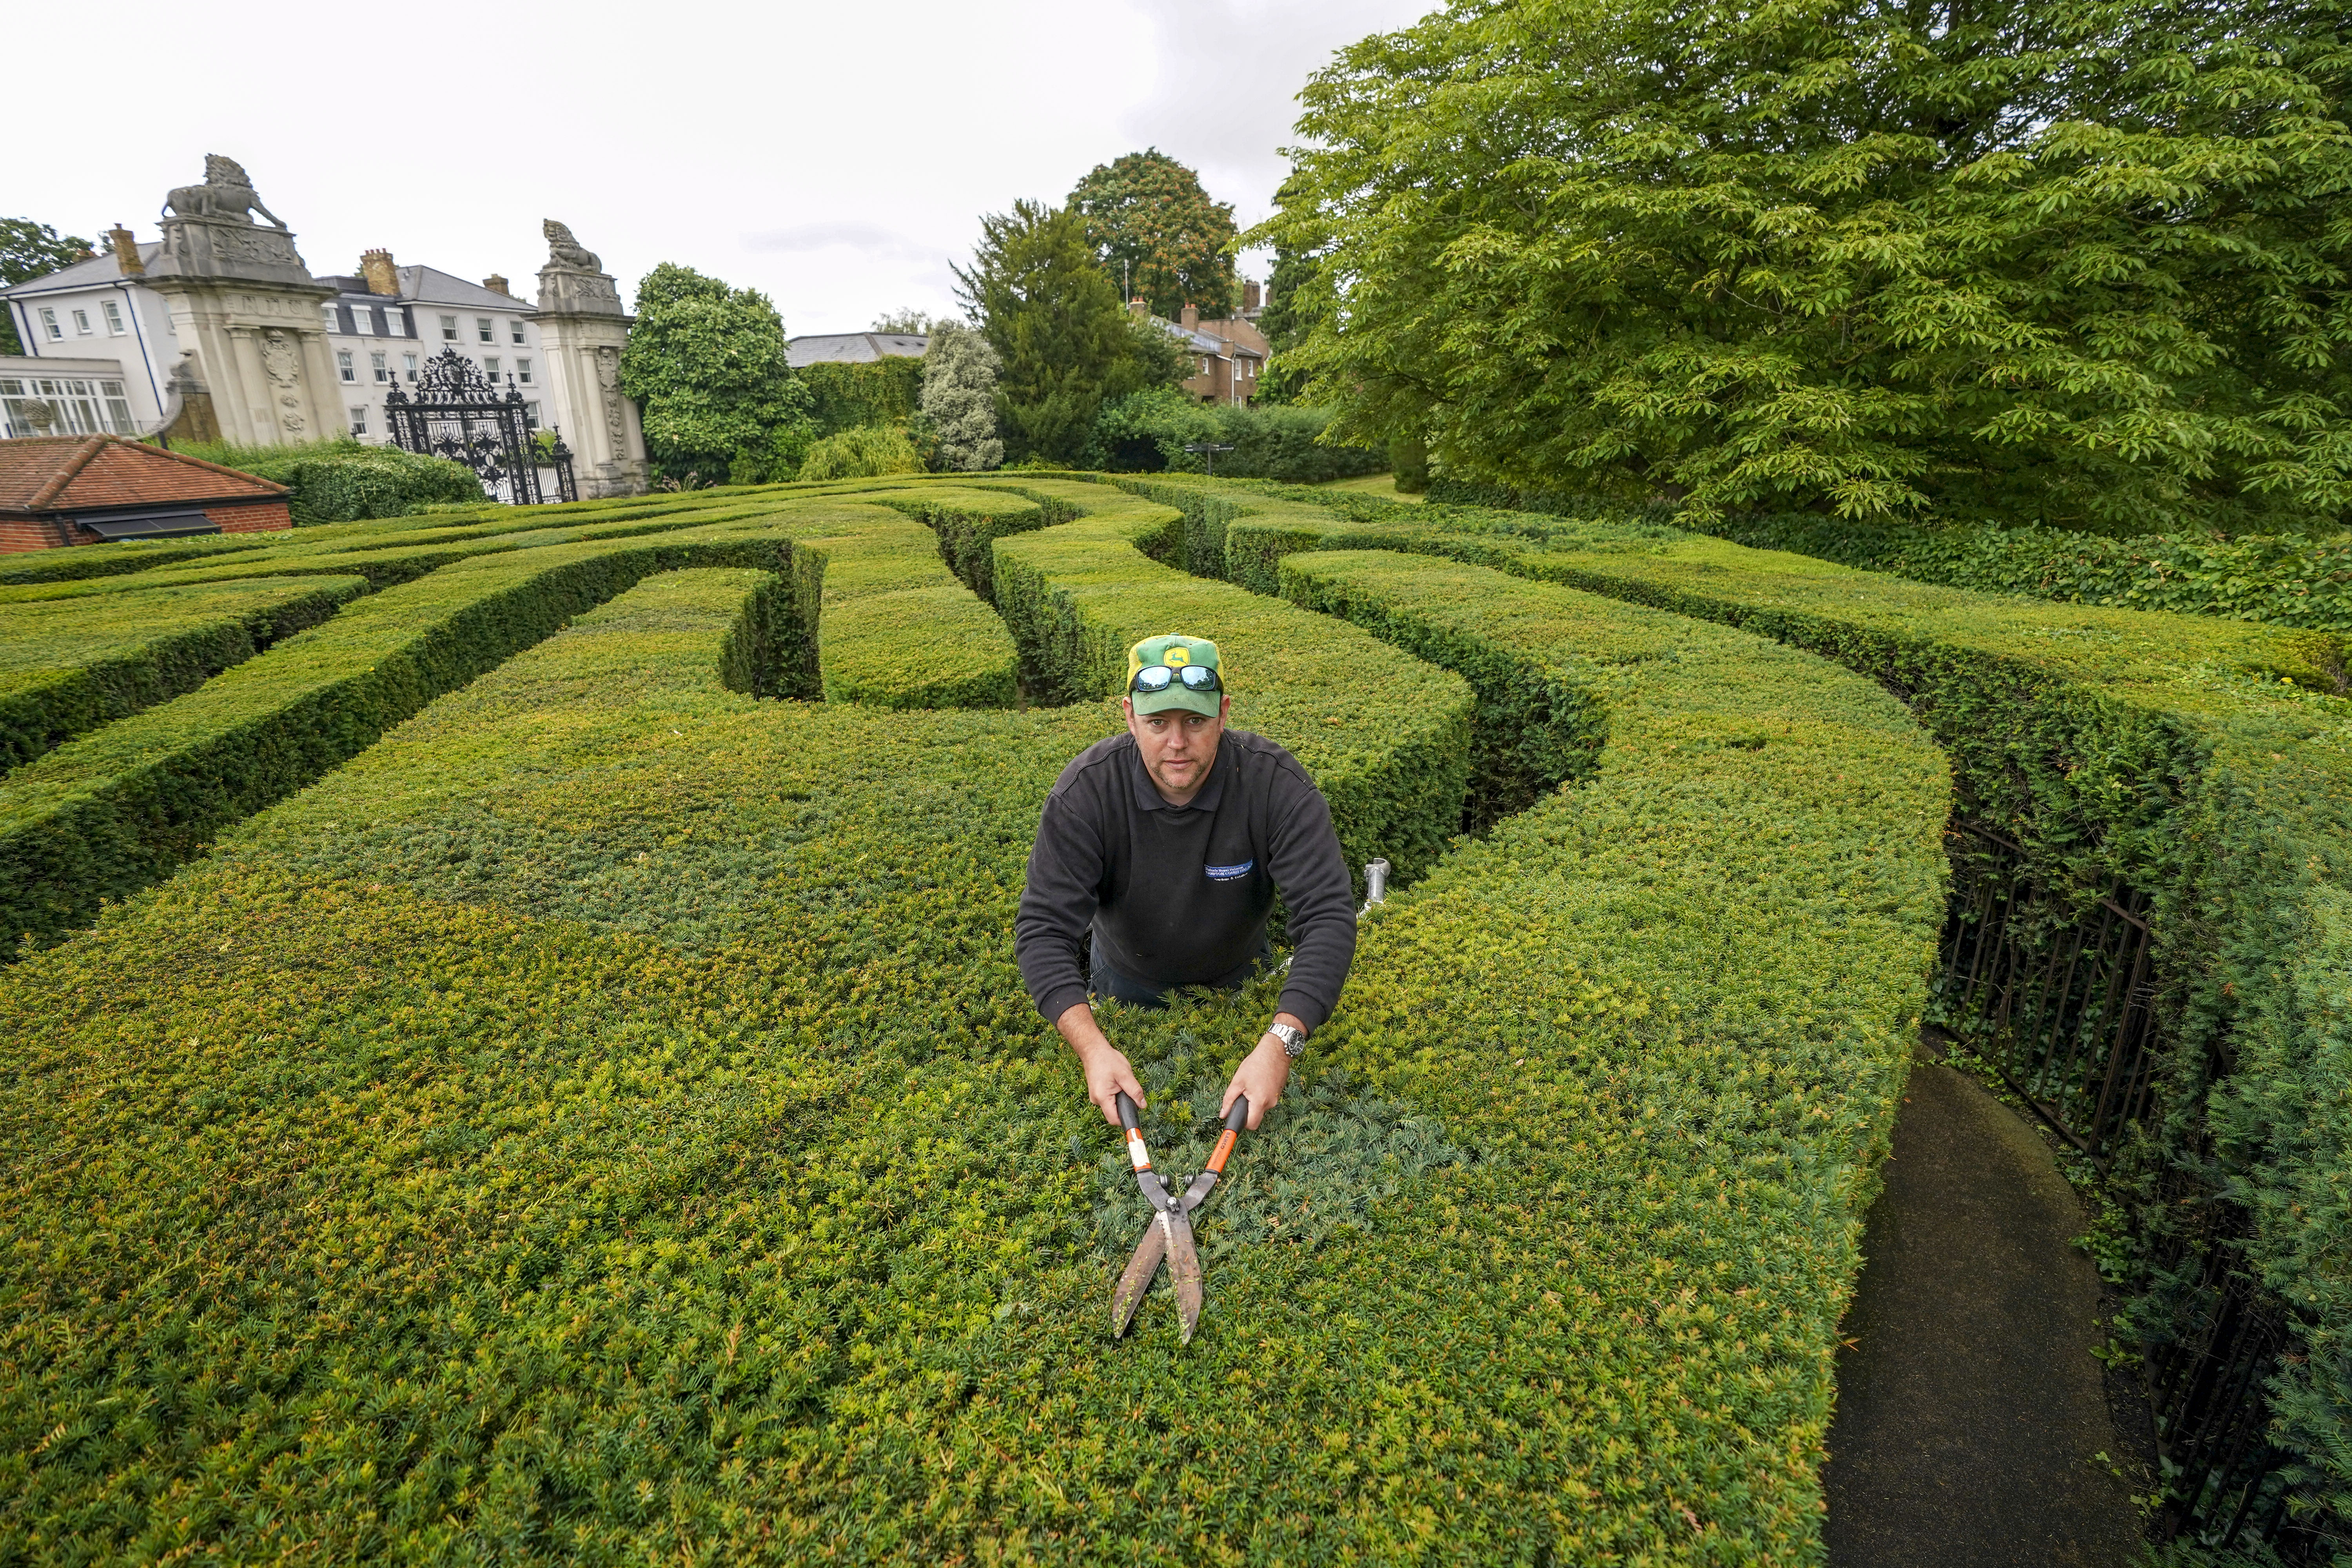 <p>Hampton Court Palace gardener Anthony Bubb undertakes a final trim of the palace's maze in Surrey, before it reopens to visitors for the first time since March 2020. Picture date: Friday July 30, 2021.</p>